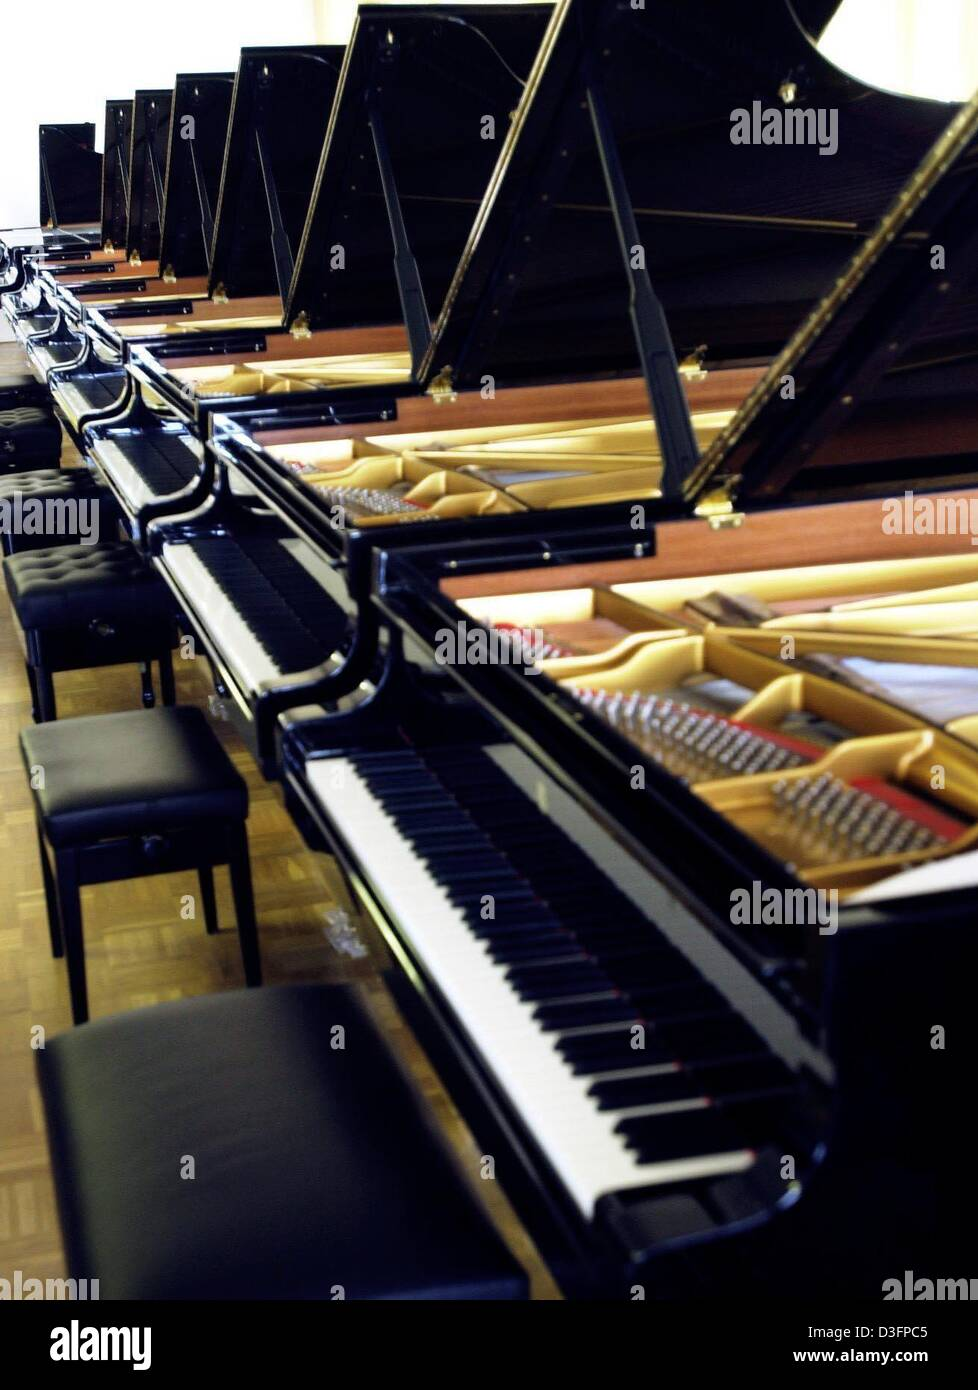 dpa) - Grand pianos are lined up to be test-played at the